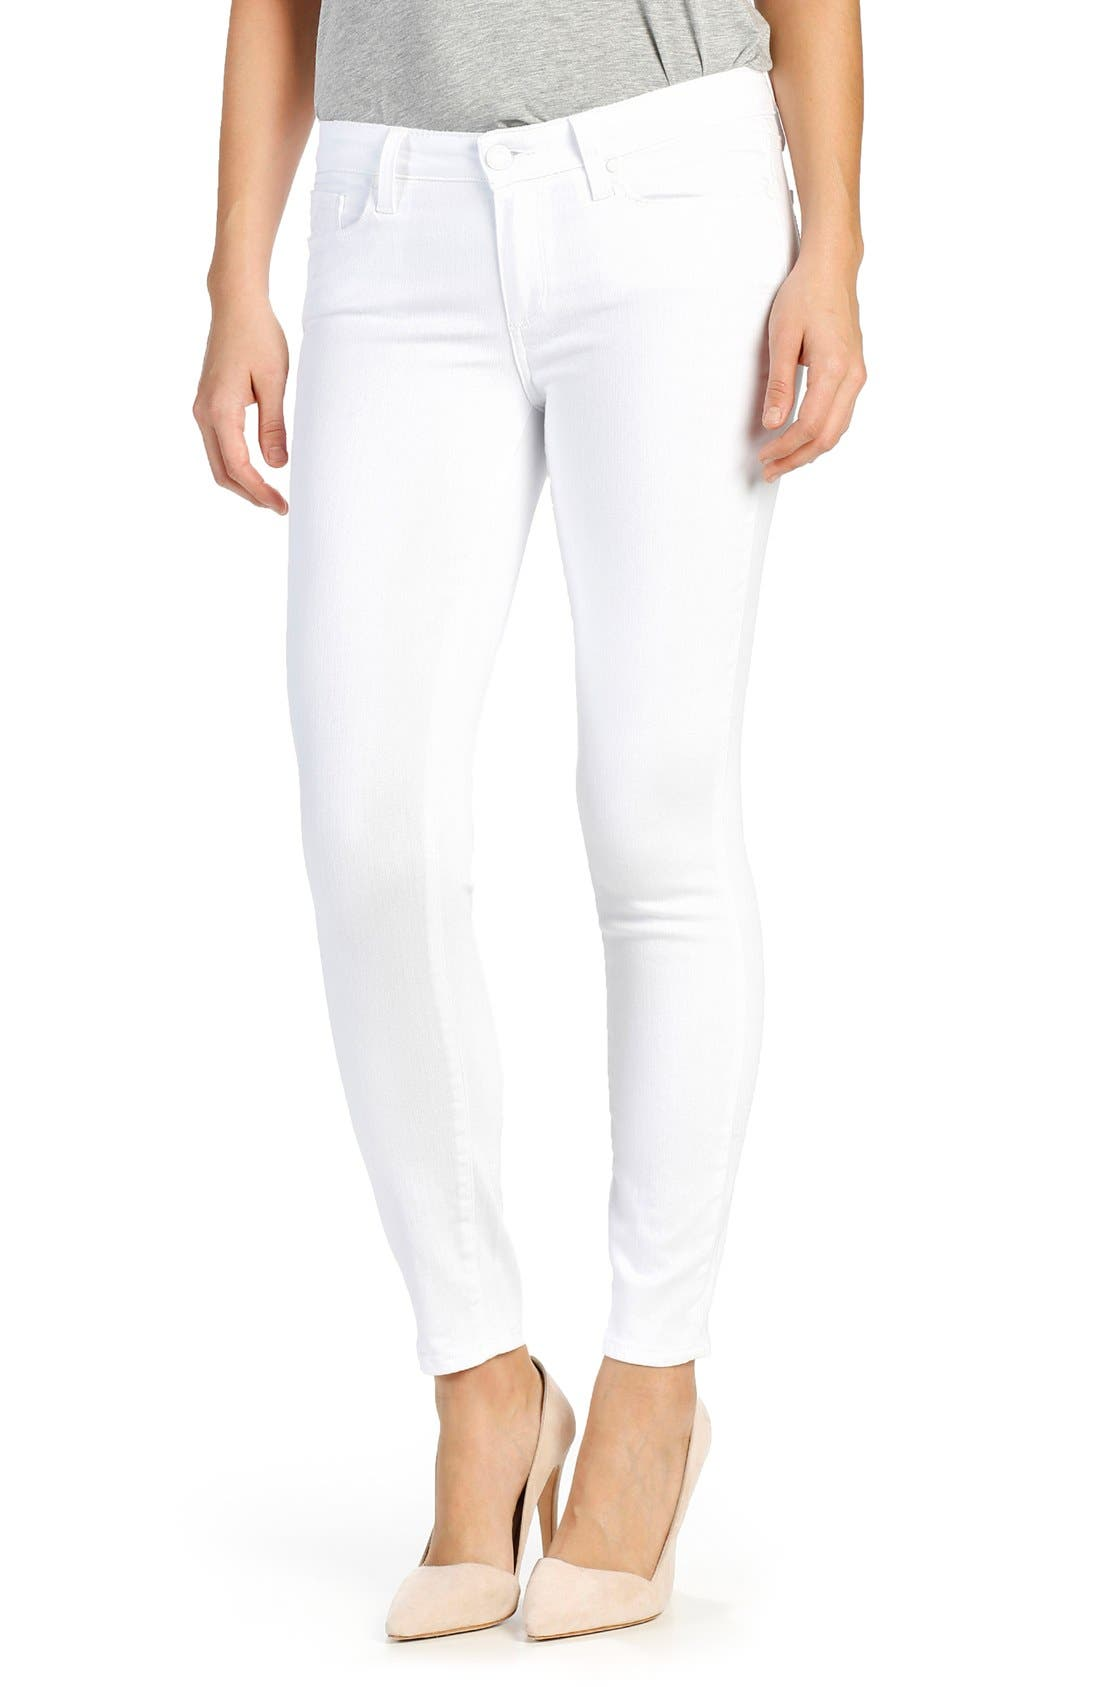 Alternate Image 1 Selected - PAIGE Verdugo Ankle Skinny Jeans (Distressed Ultra White)